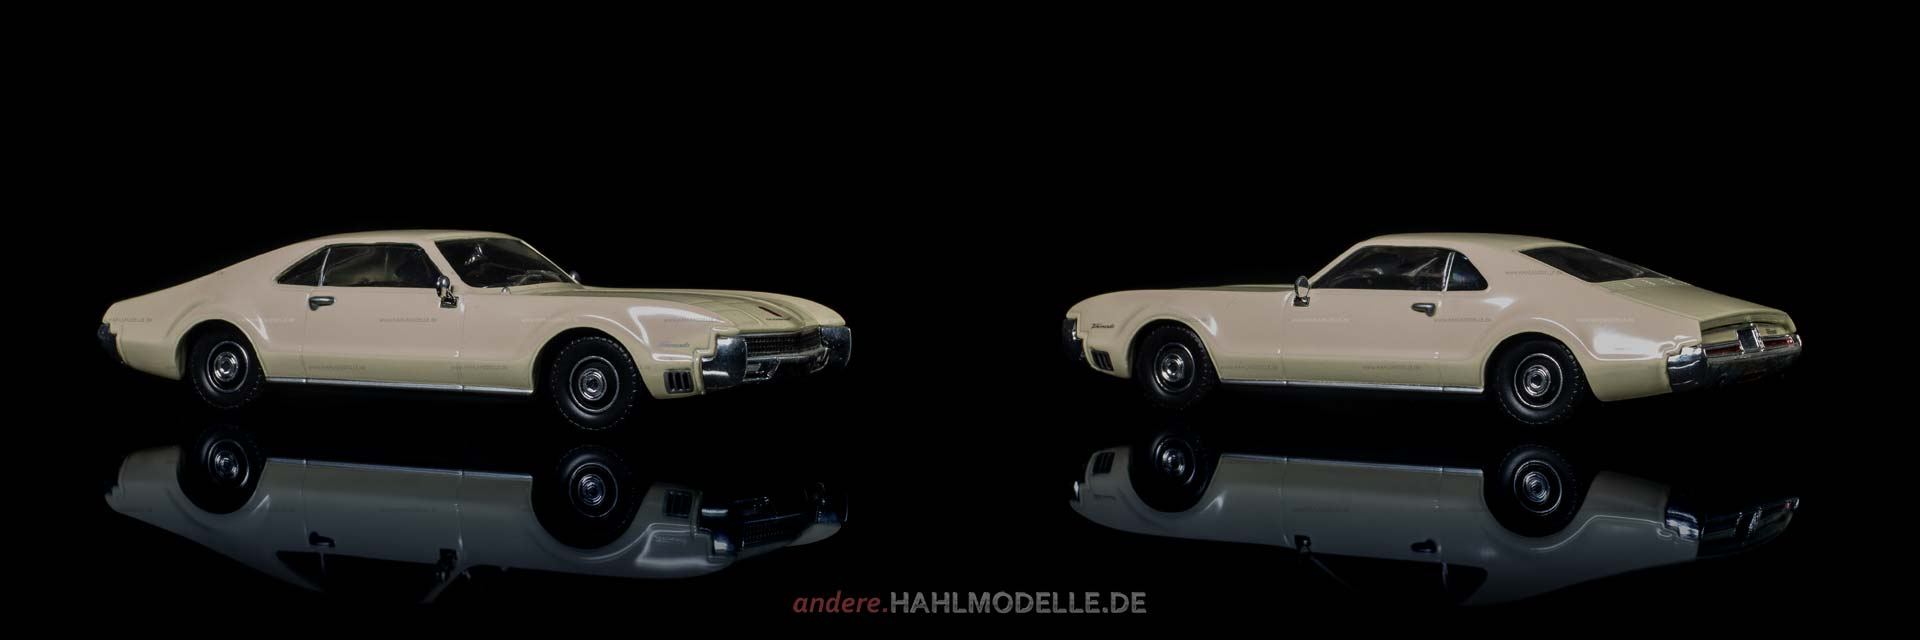 Oldsmobile Toronado | Coupé | Ixo (Del Prado Car Collection) | 1:43 | www.andere.hahlmodelle.de